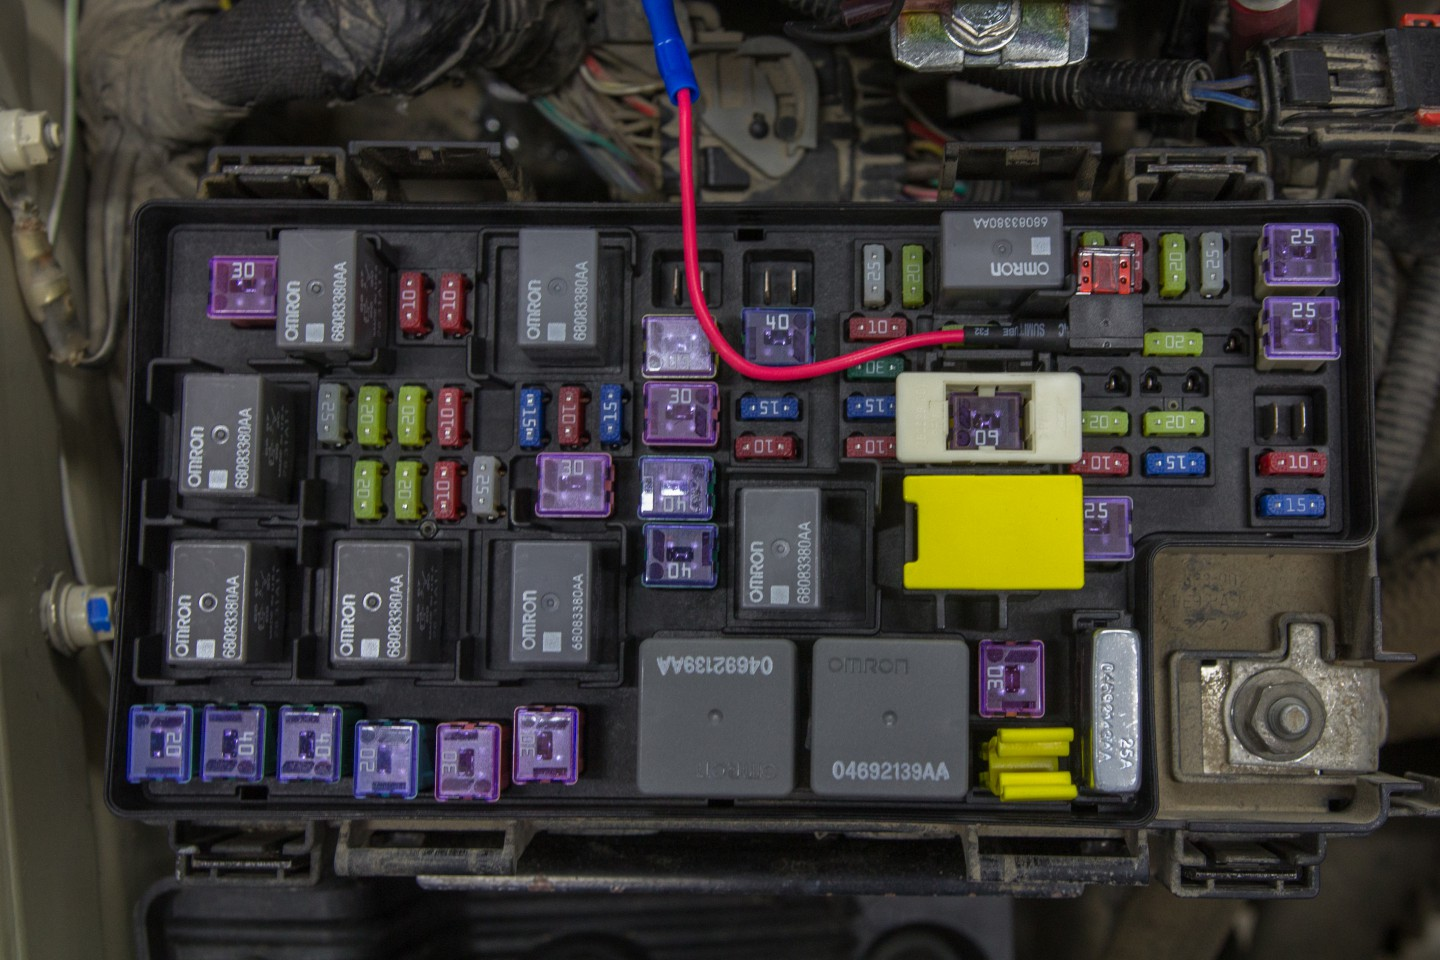 Diy Jeep Wrangler Jk Isolated Dual Batteries The Road Chose Me Series Parallel Battery Wiring In Addition How To Wire 12v Mini Add A Circuit Fuse Holder Box